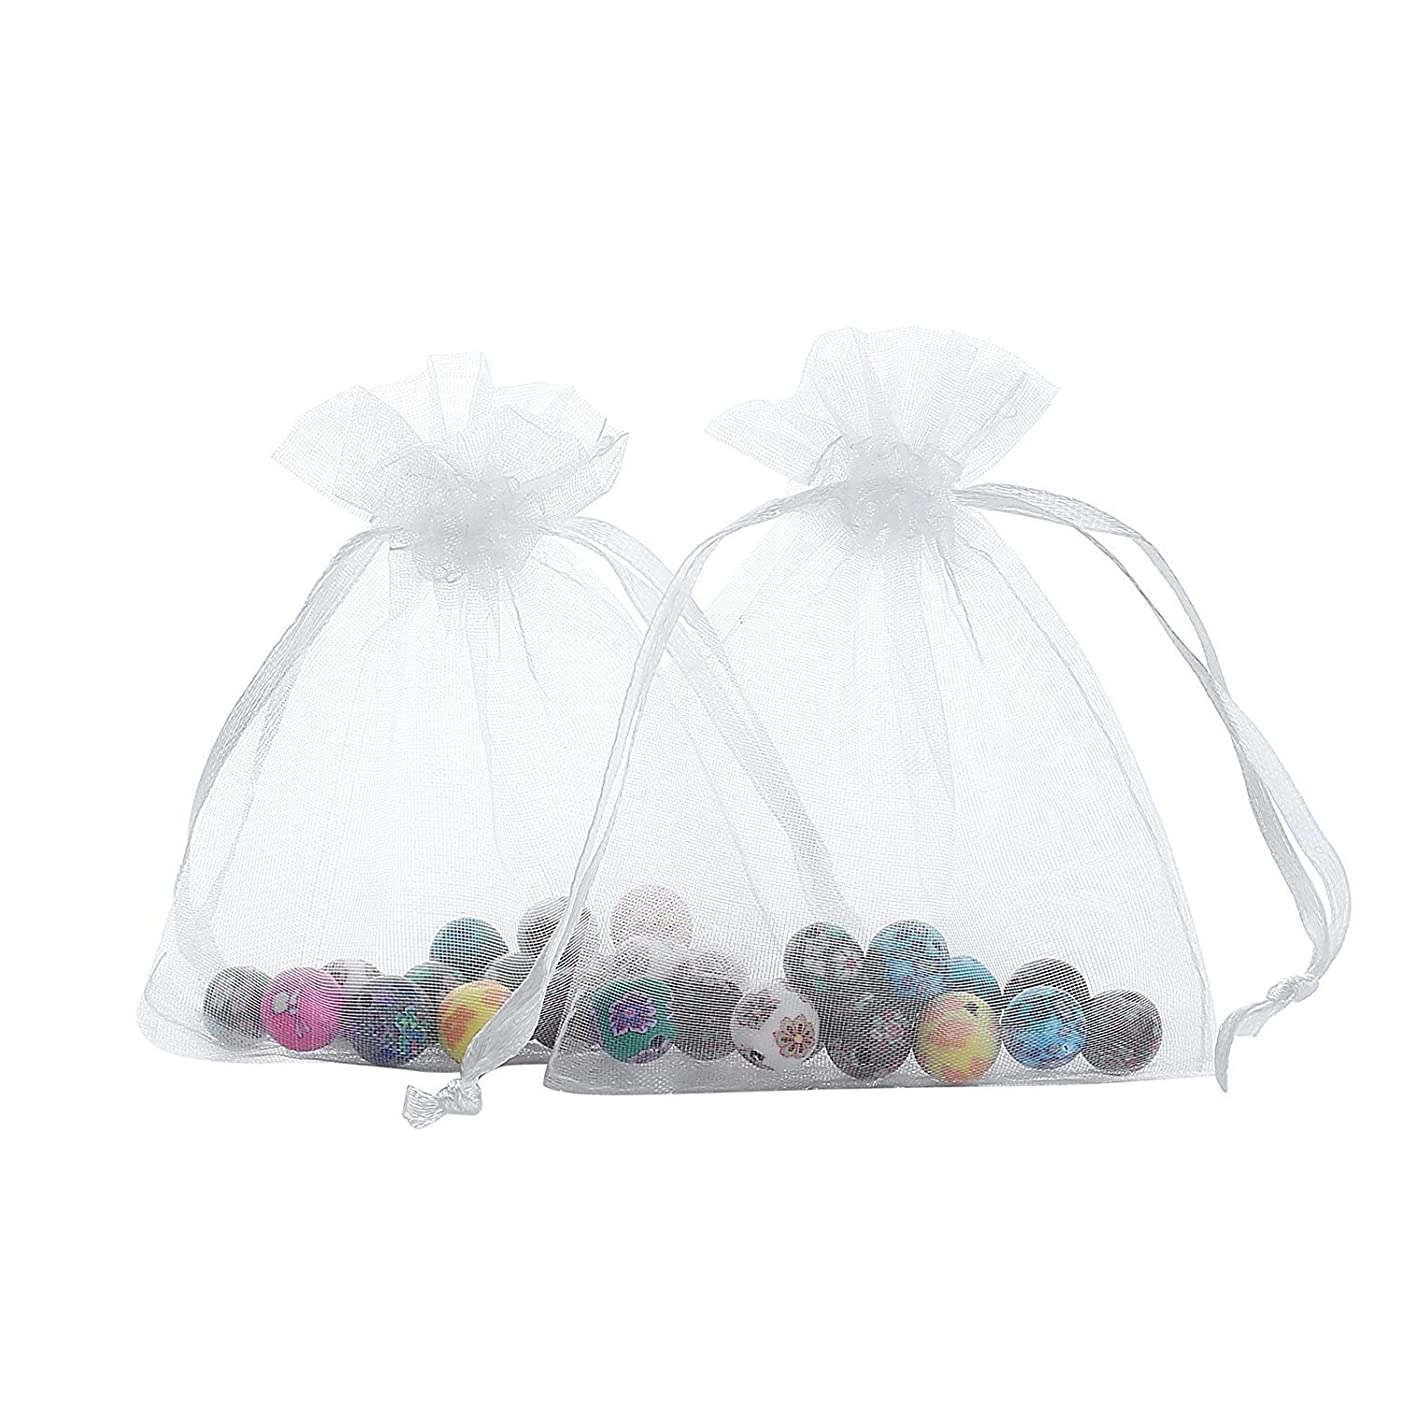 Ankirol 50pcs Large Sheer Organza Favor Bags 6.6x9'' Jewelry Candy Gift Bags Mini Bottle Wine Bags Samples Display Drawstring Pouches (White)